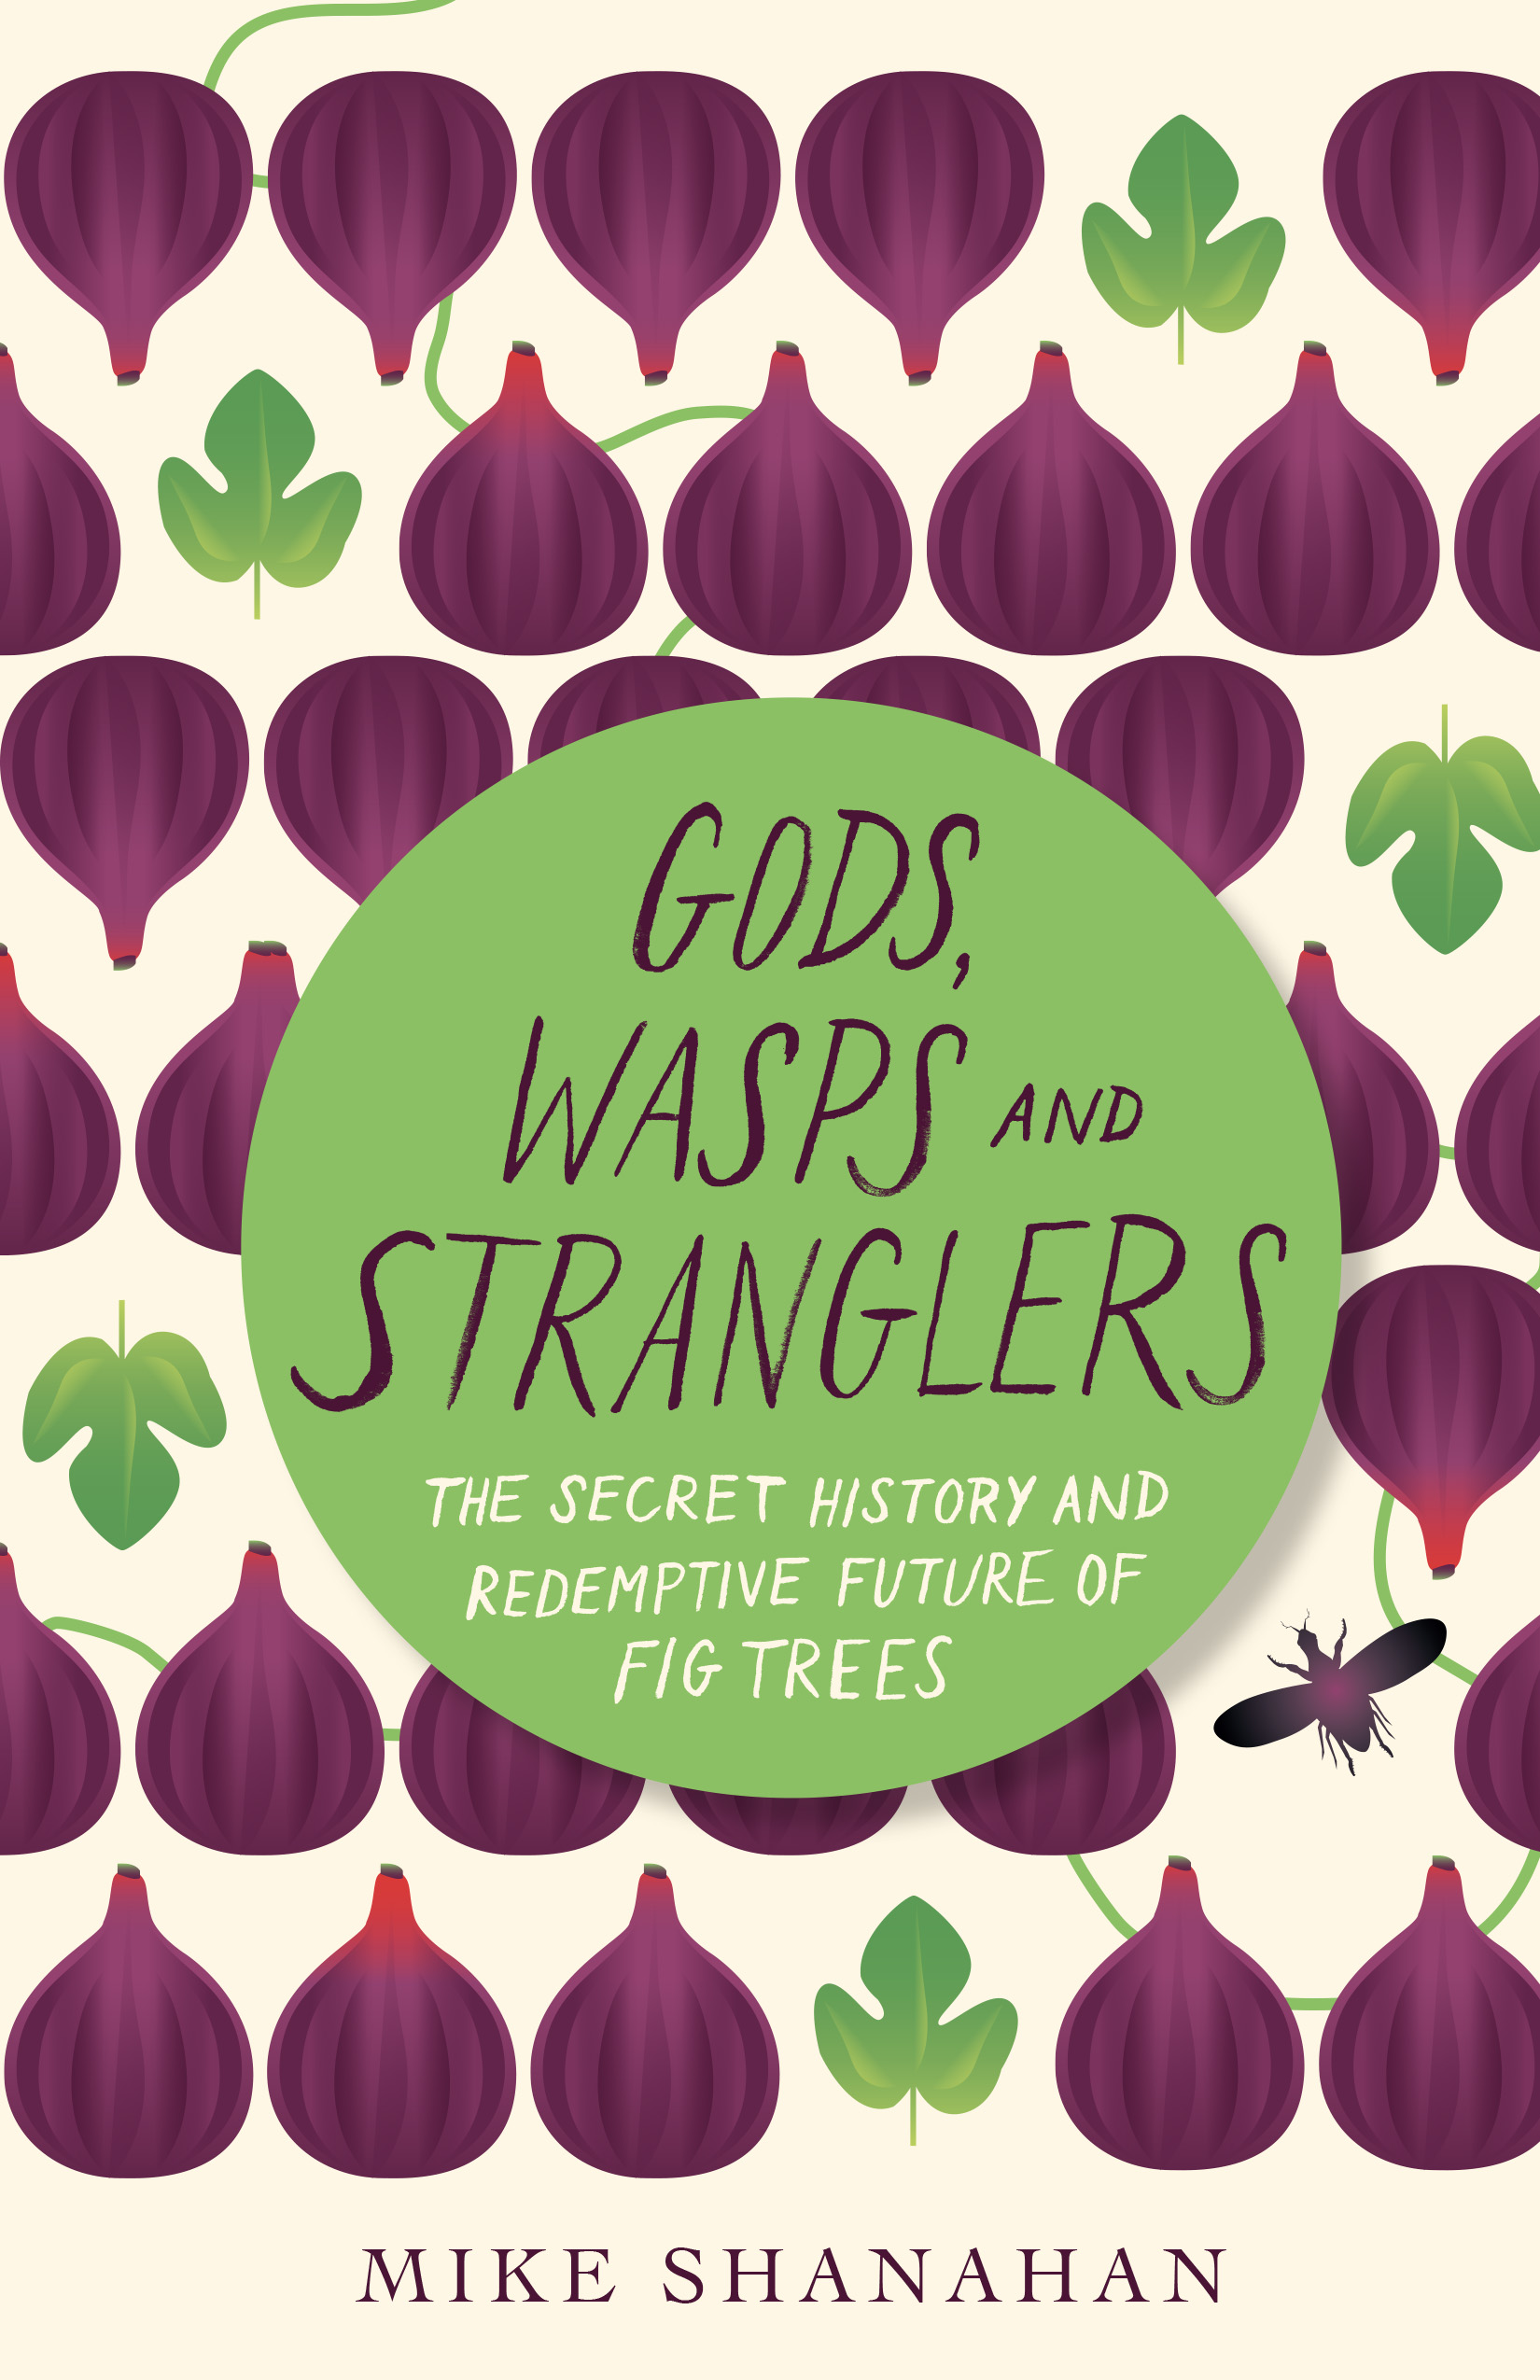 Gods, Wasps, and Stranglers cover